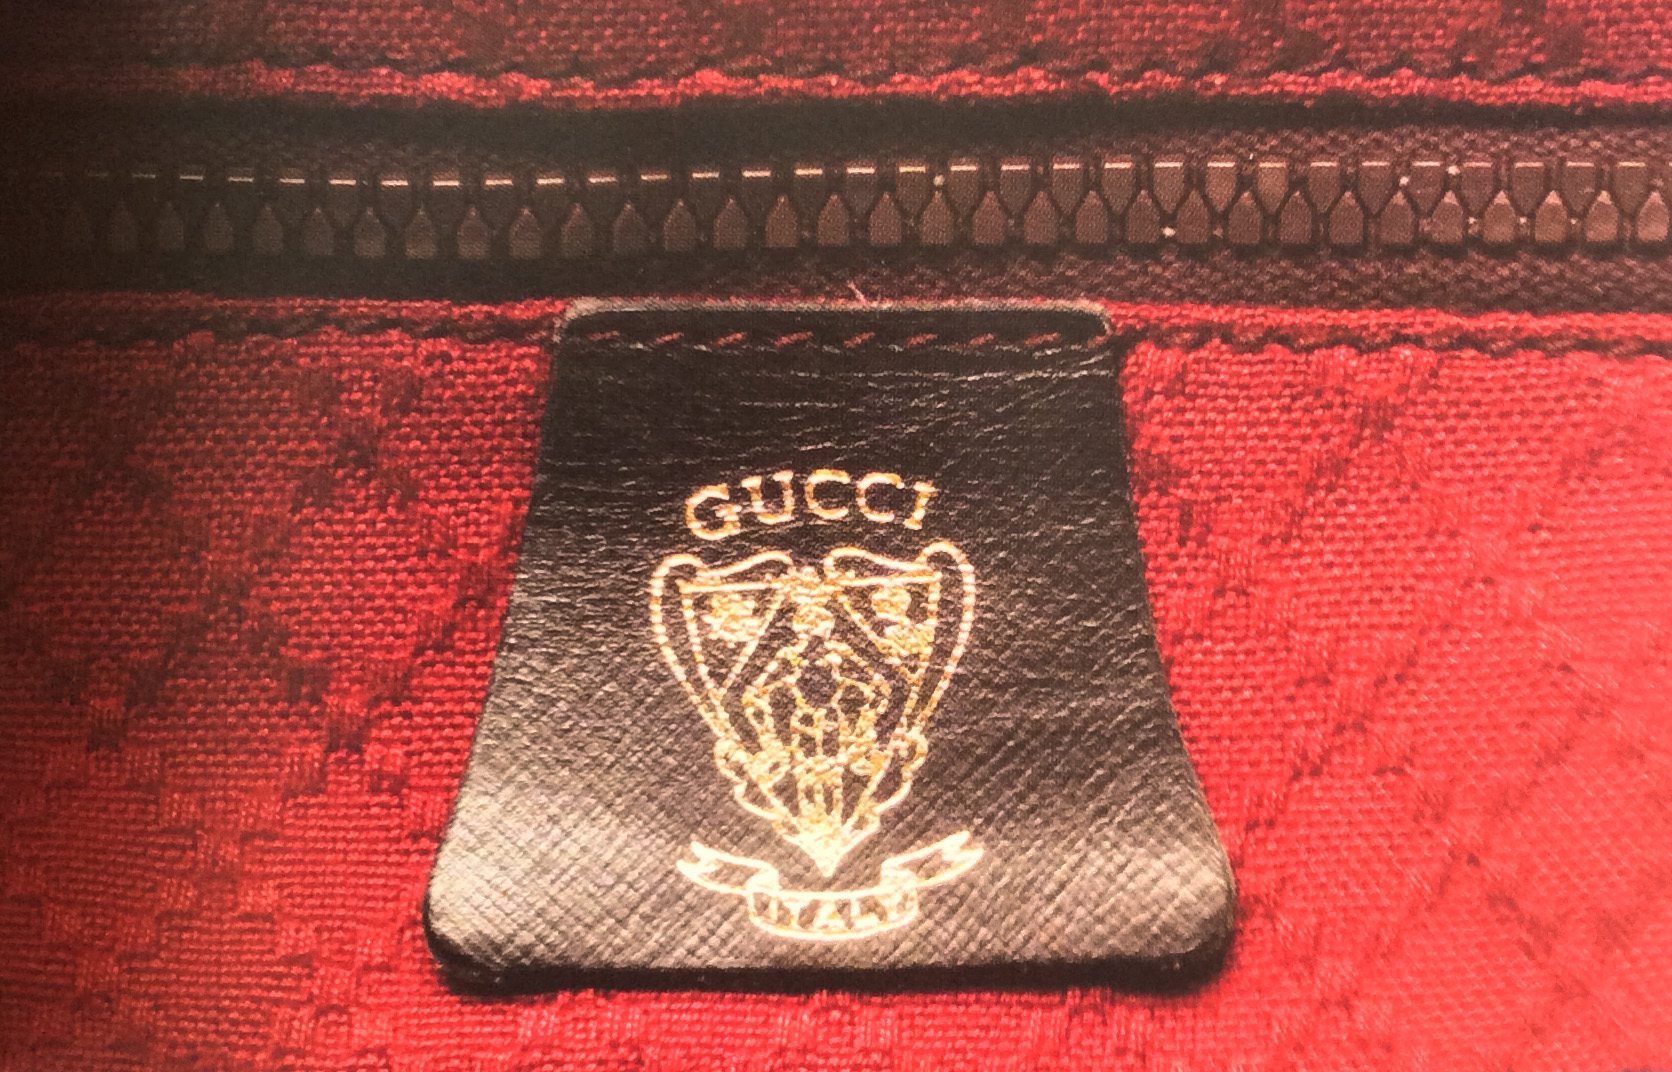 Bagaholic 101 - Gucci Heritage, Icons, and Beyond - Luggage interior with leather tag showing 'GUCCI ITALY. and the Gucci crest hotstamped in gold